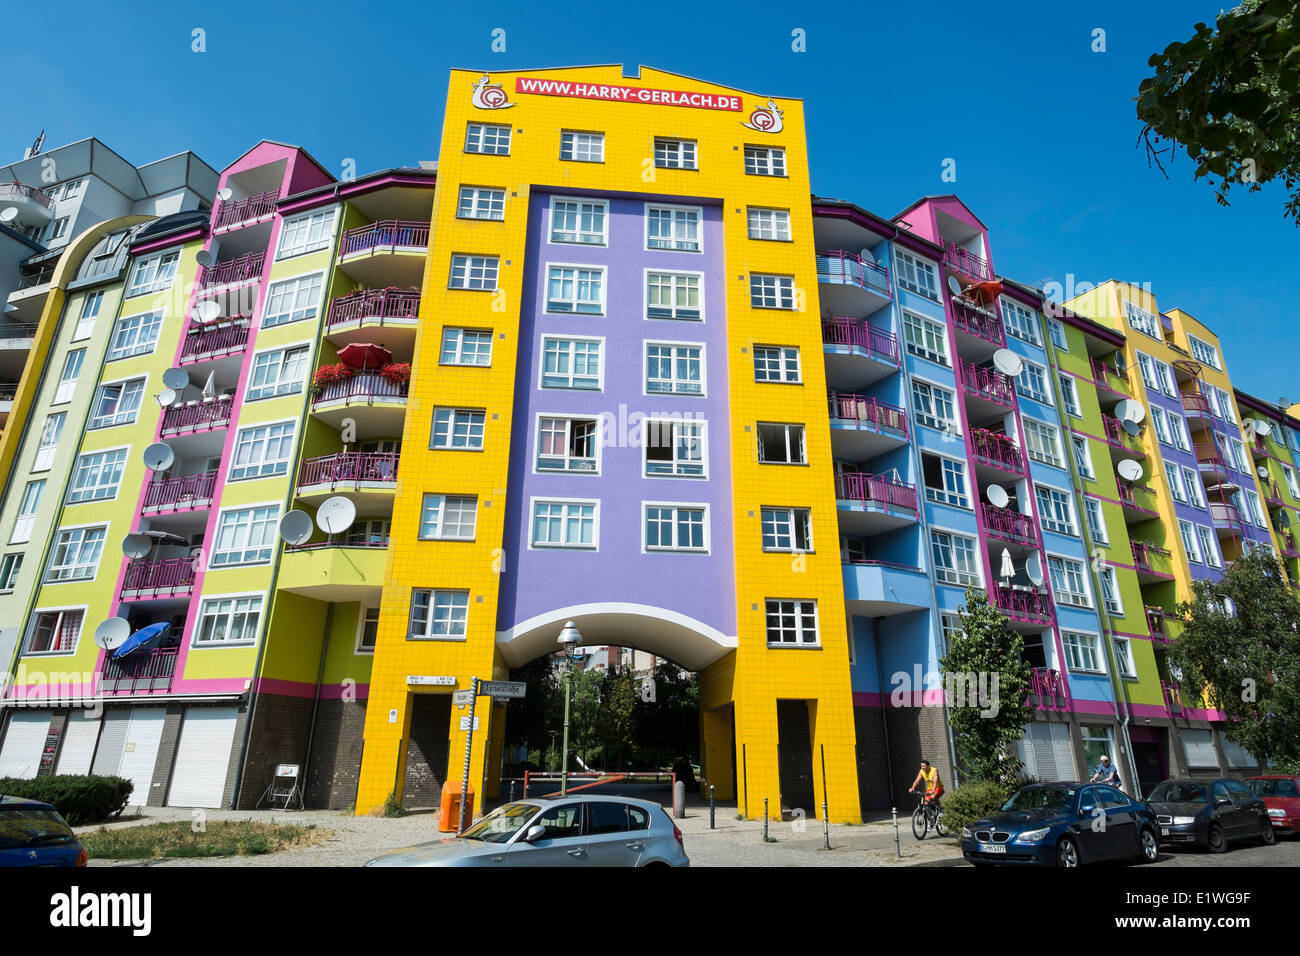 Colourful facade of apartment building in Berlin Germany - Stock Image